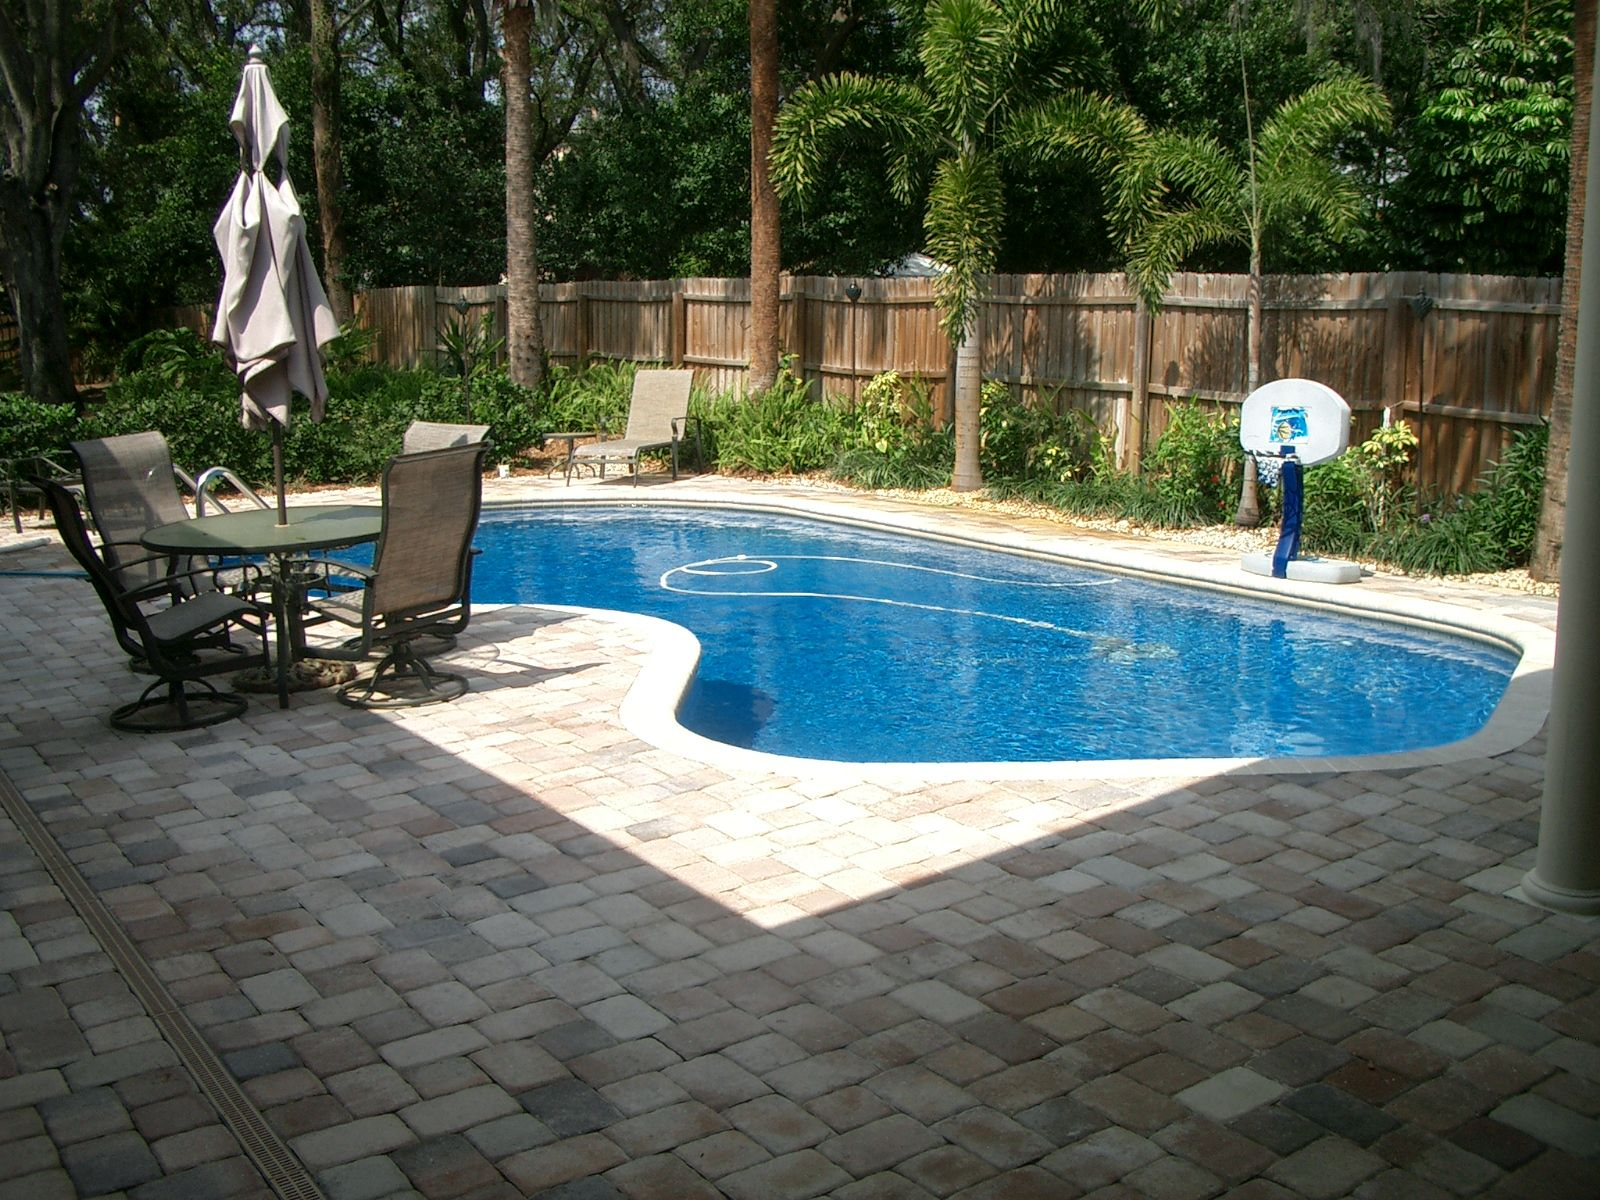 Pools Backyard Ideas Stunning 51 Best Backyard Pool Ideas Images On Pinterest  Backyard Ideas . Decorating Inspiration